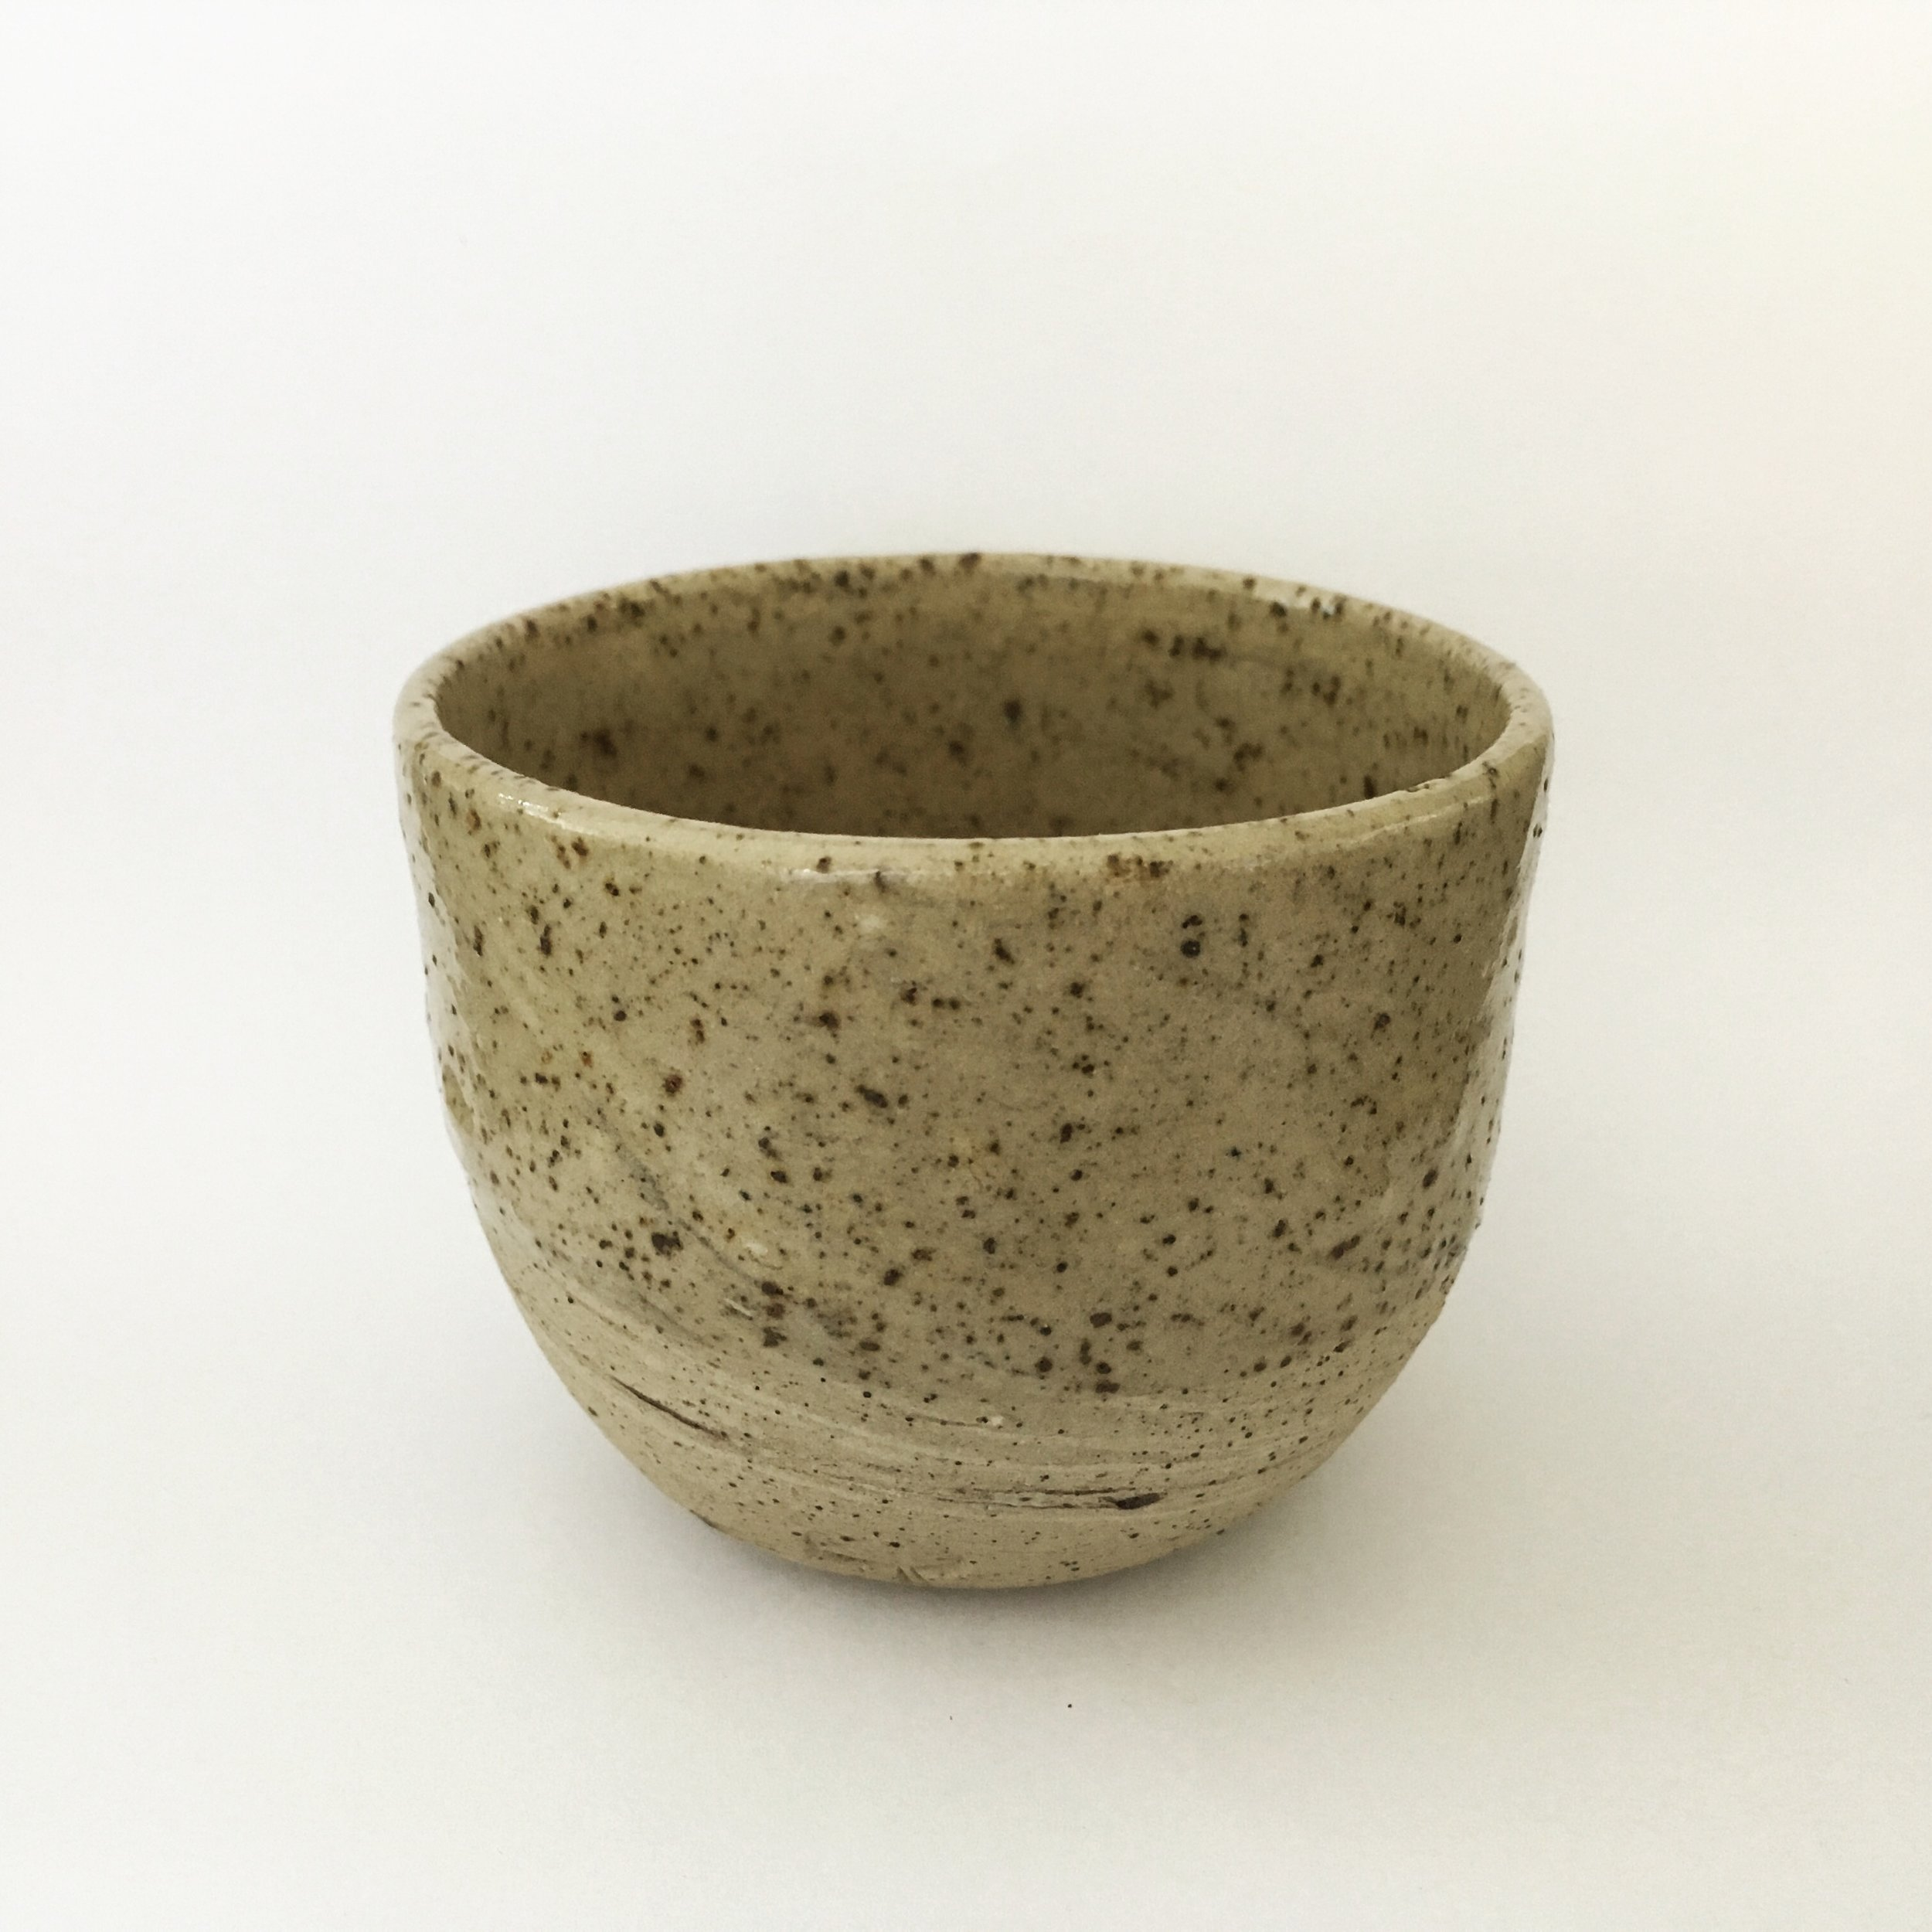 Coffee cup   Unsieved and unwashed local clay from Vimoutiers, FR mixed with stoneware. Transparent glaze.  Ø 7 cm  (Sold)